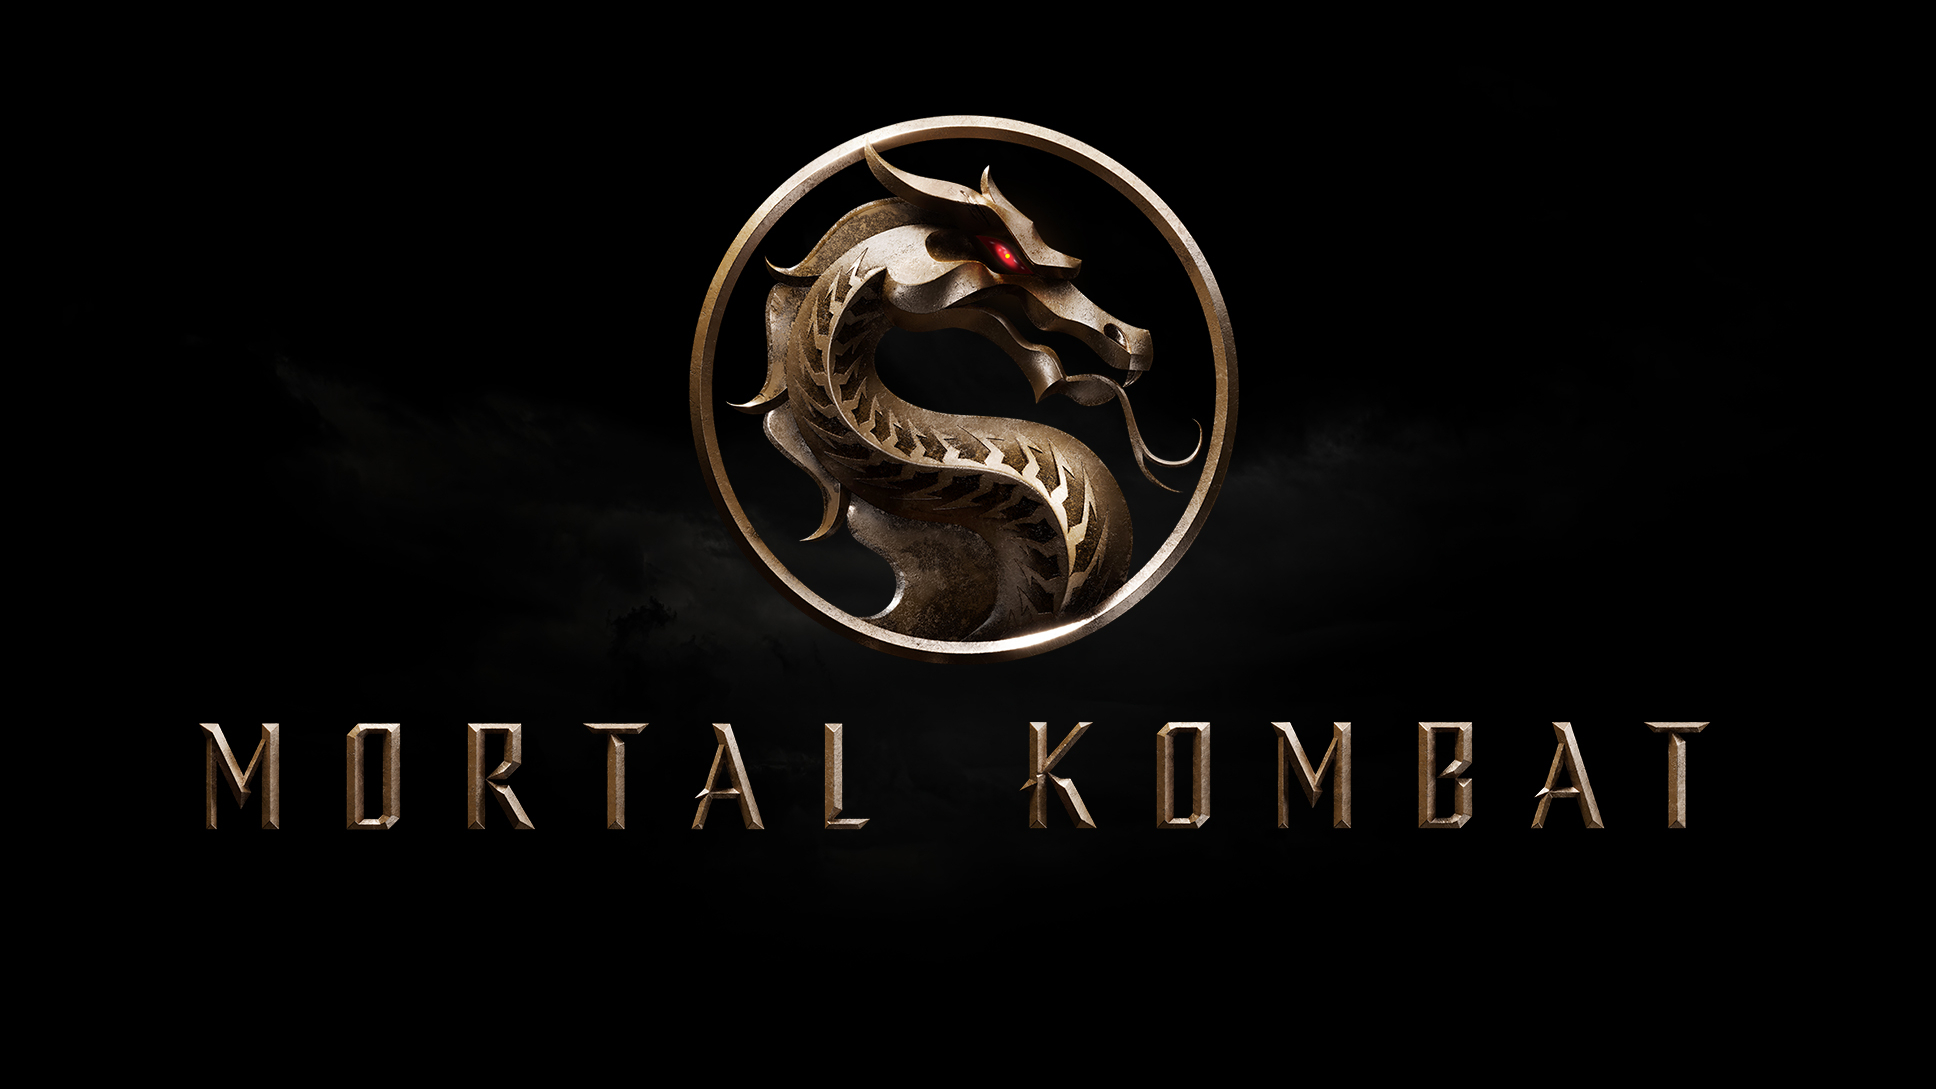 First Look At The Mortal Kombat Reboot